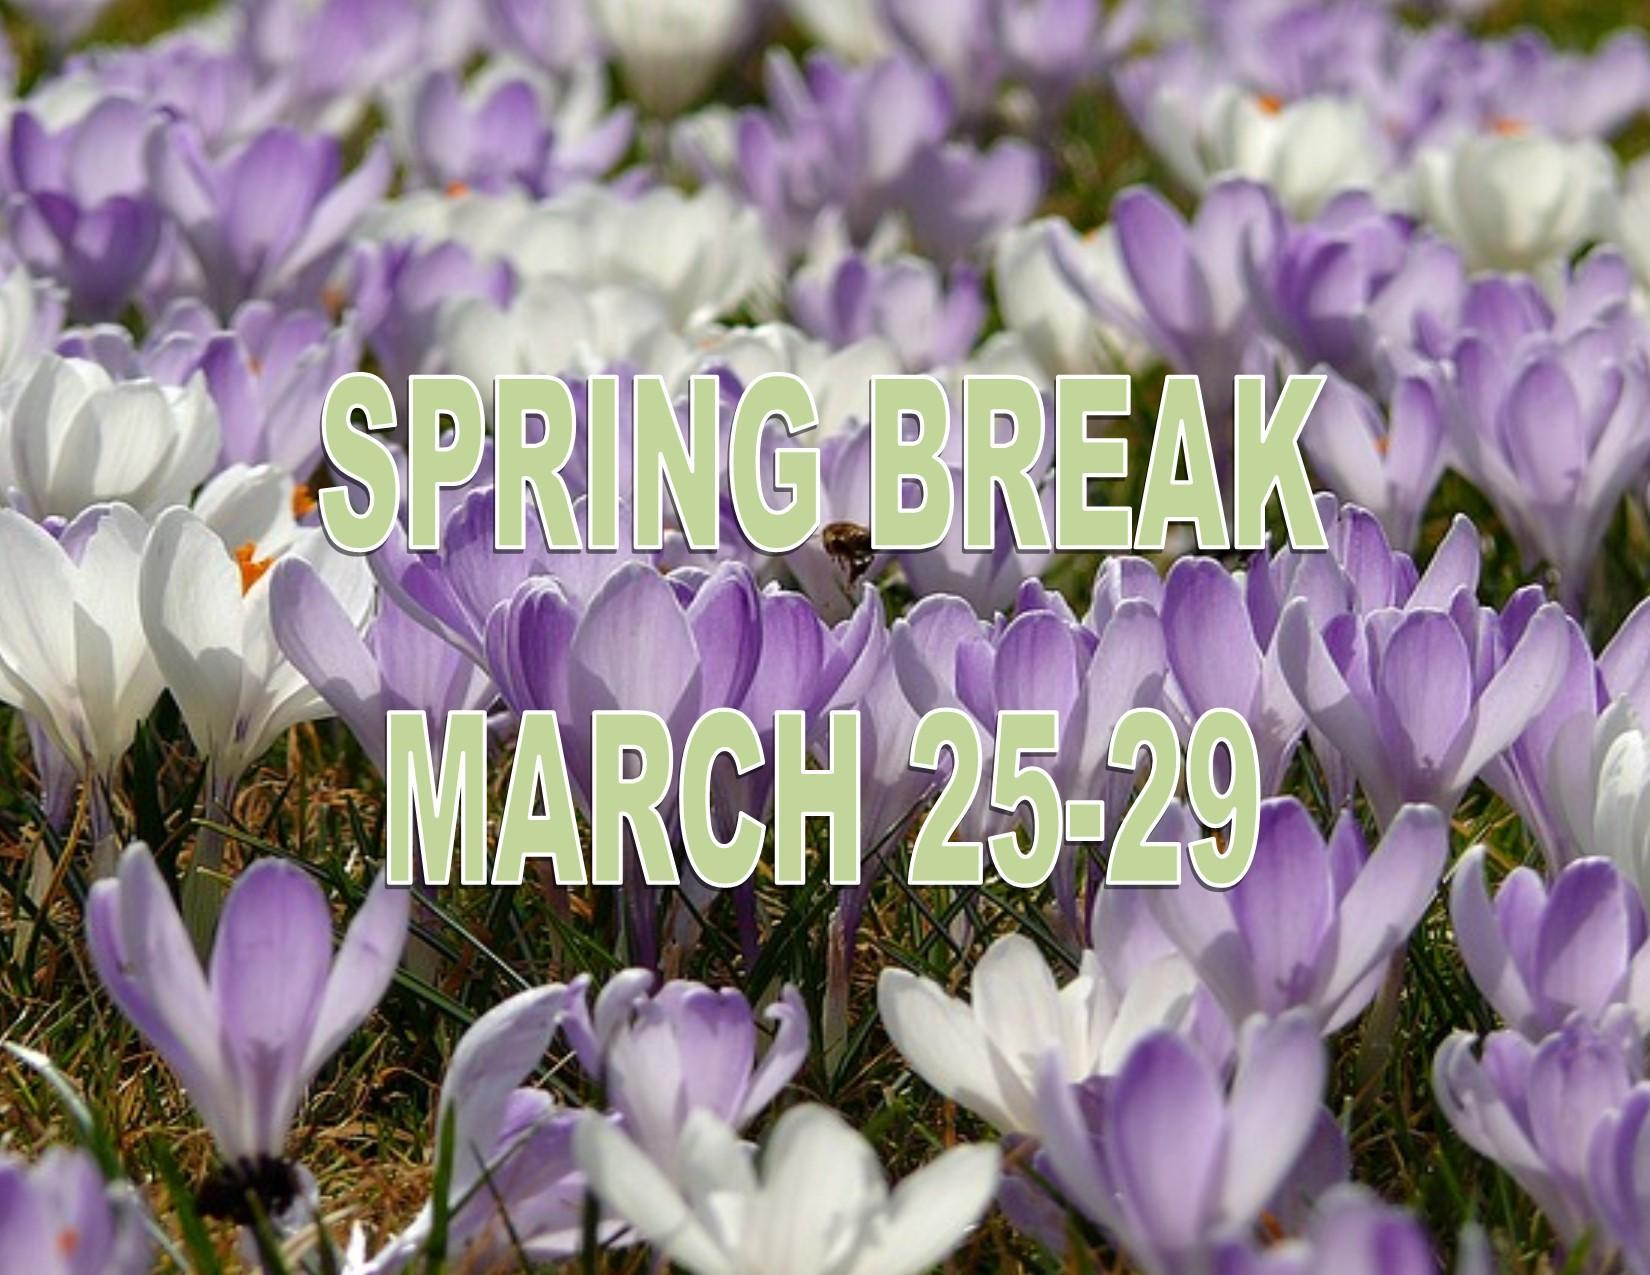 Have a great Spring Break! March 25-29